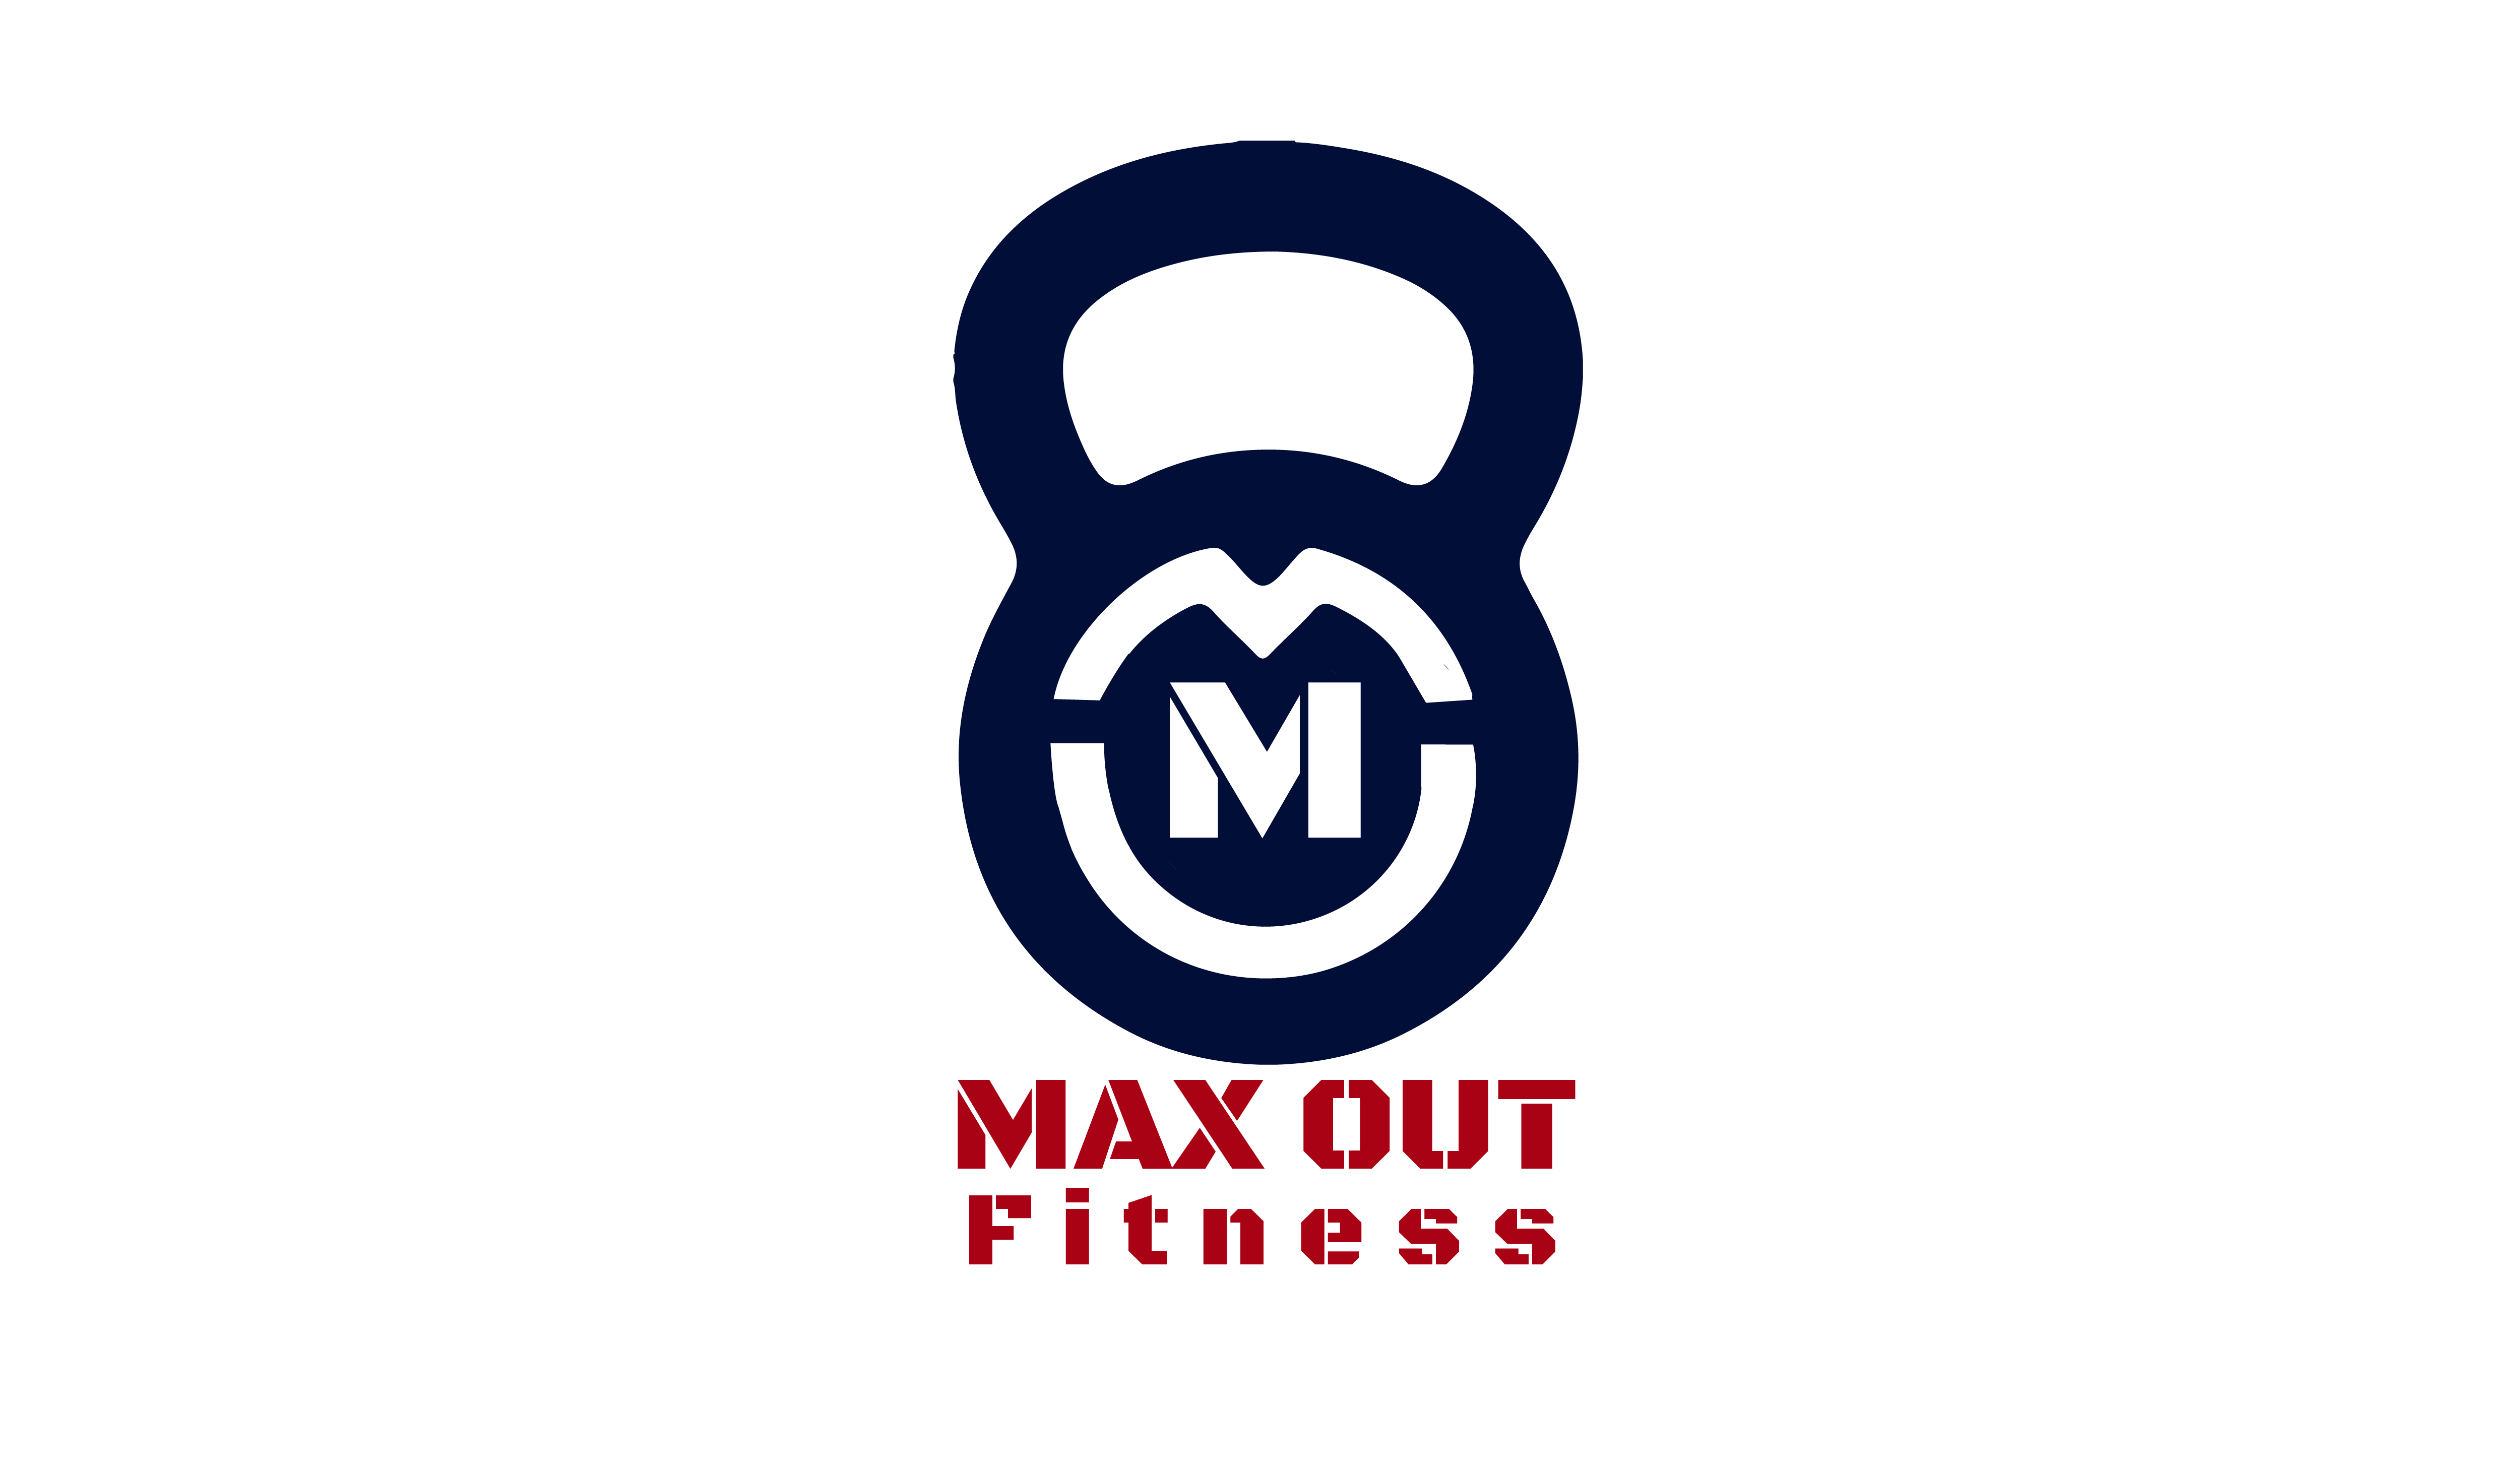 Max Out Fitness